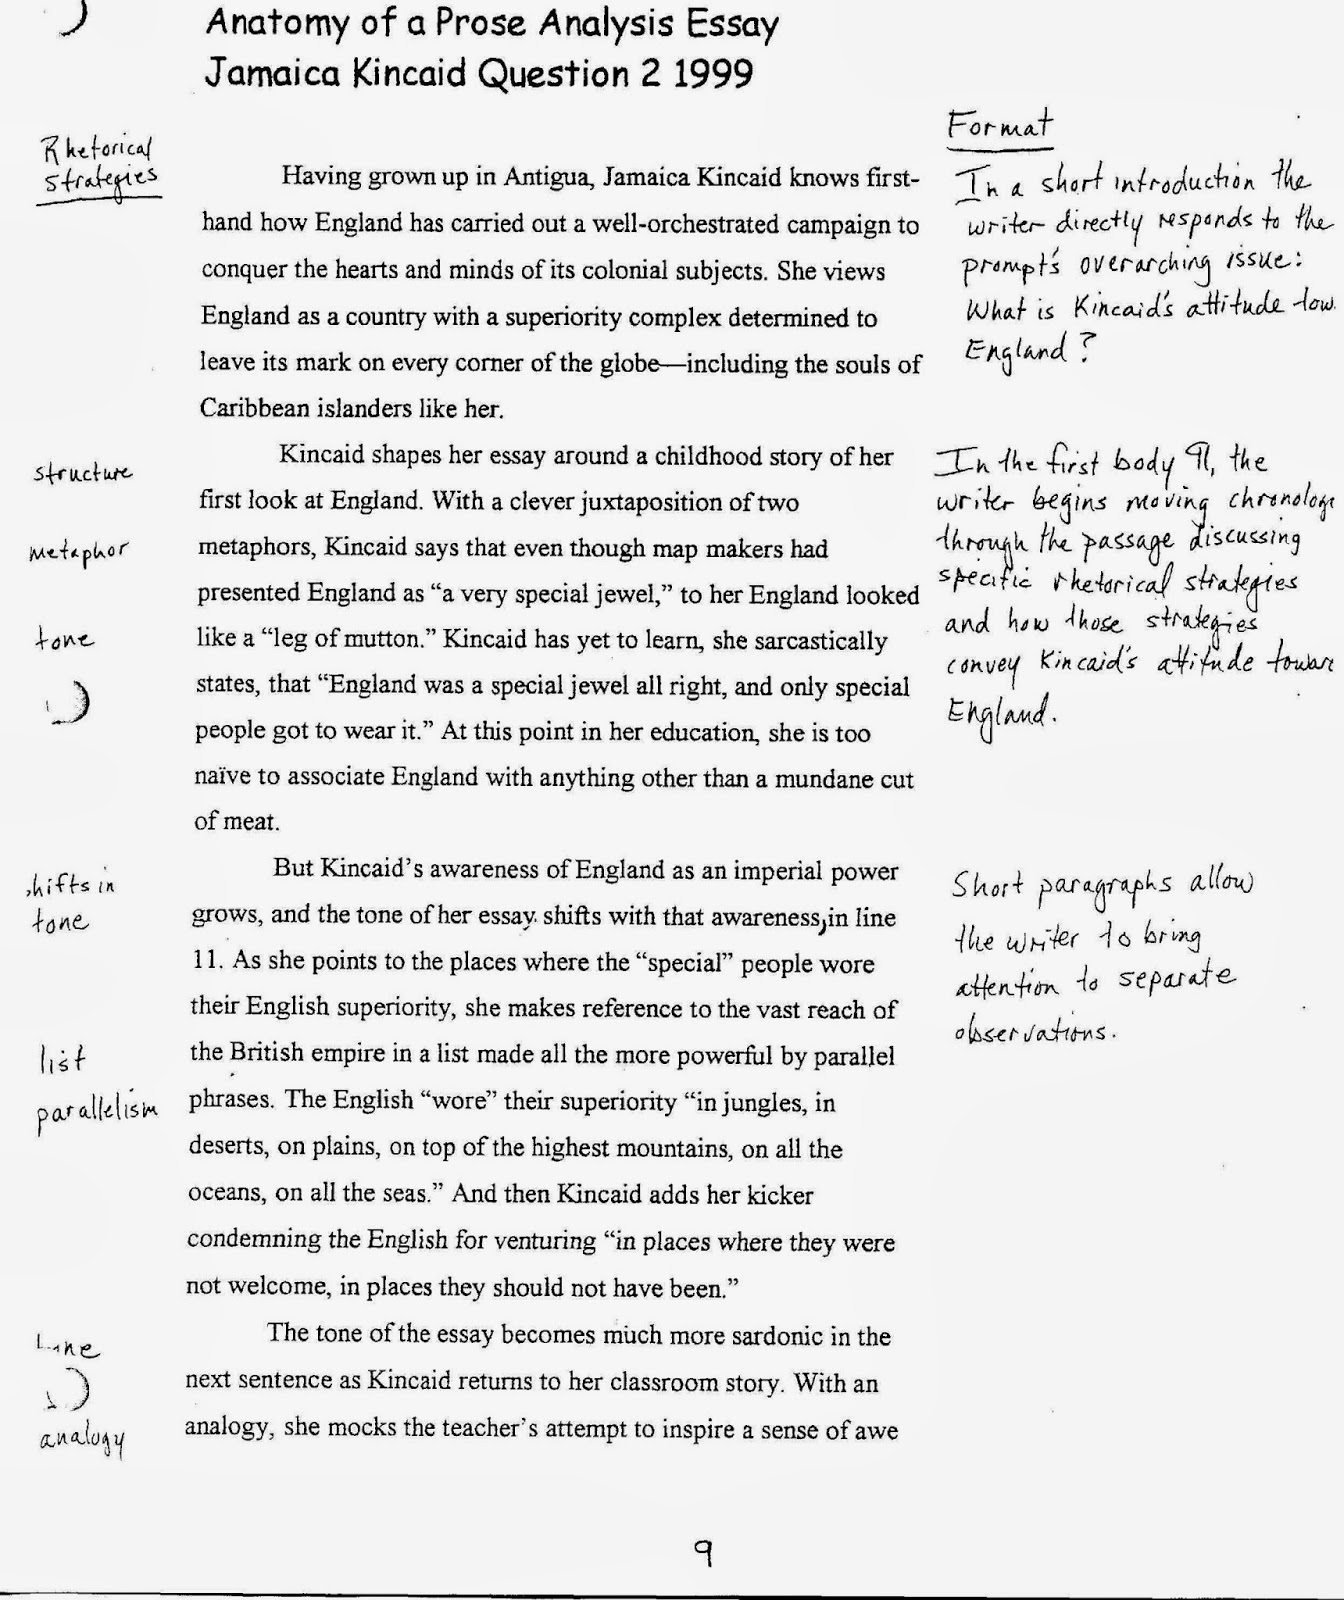 analytical essay template analysis essay outline analyze essay ...